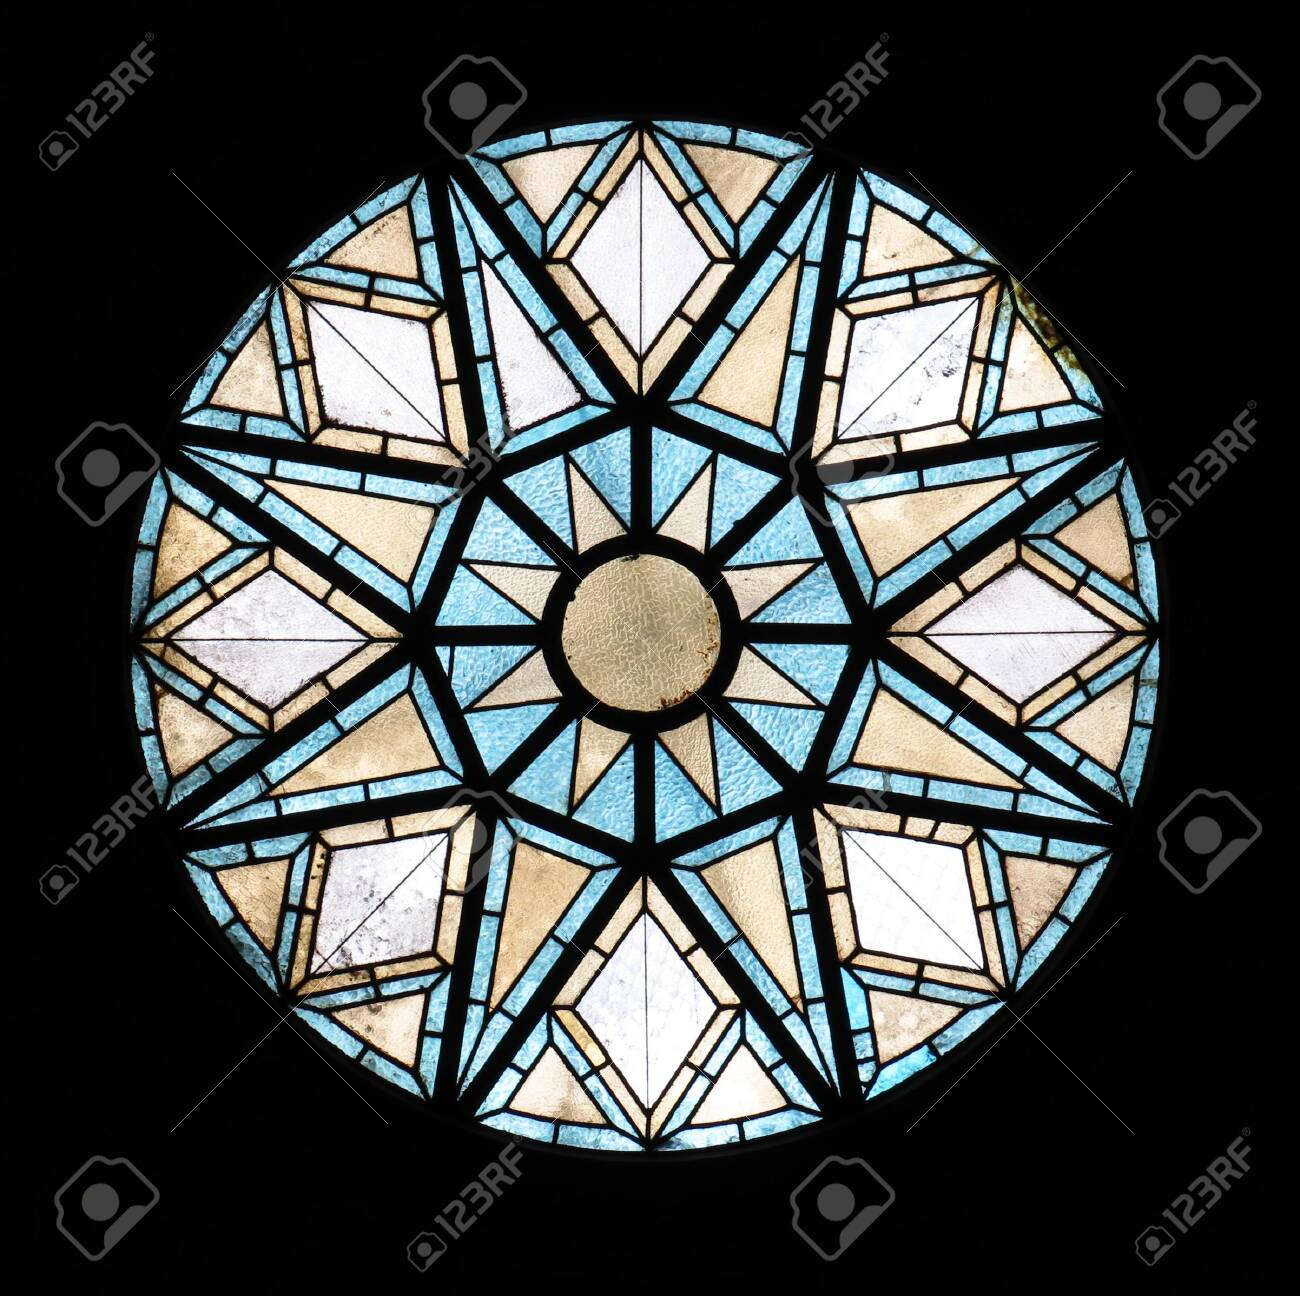 Beautiful old glass window at the ceiling of the Placa D'Antonio Lopez post office in Barcelona. - 132520354